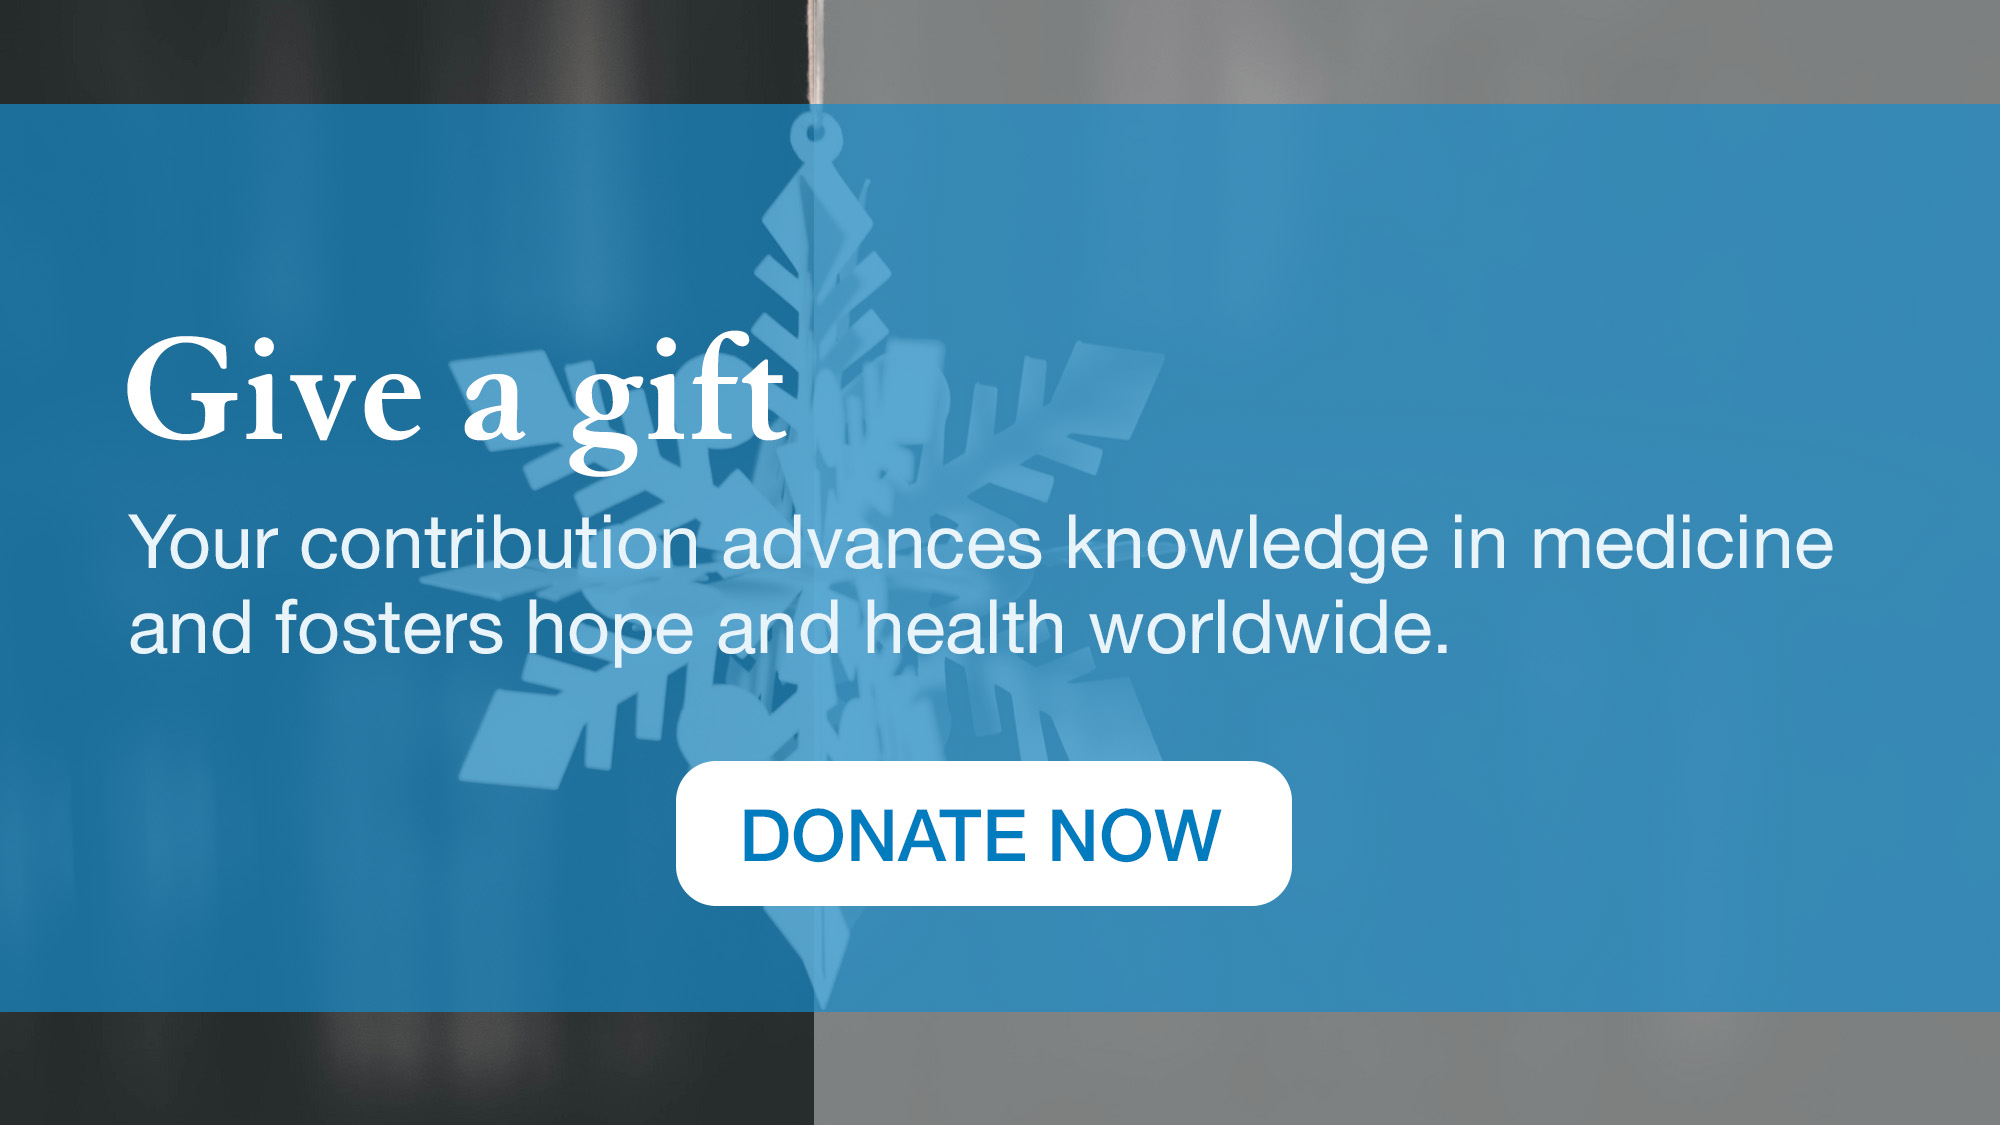 Give a Gift: Your contribution advances knowledge in medicine and fosters hope and health worldwide.